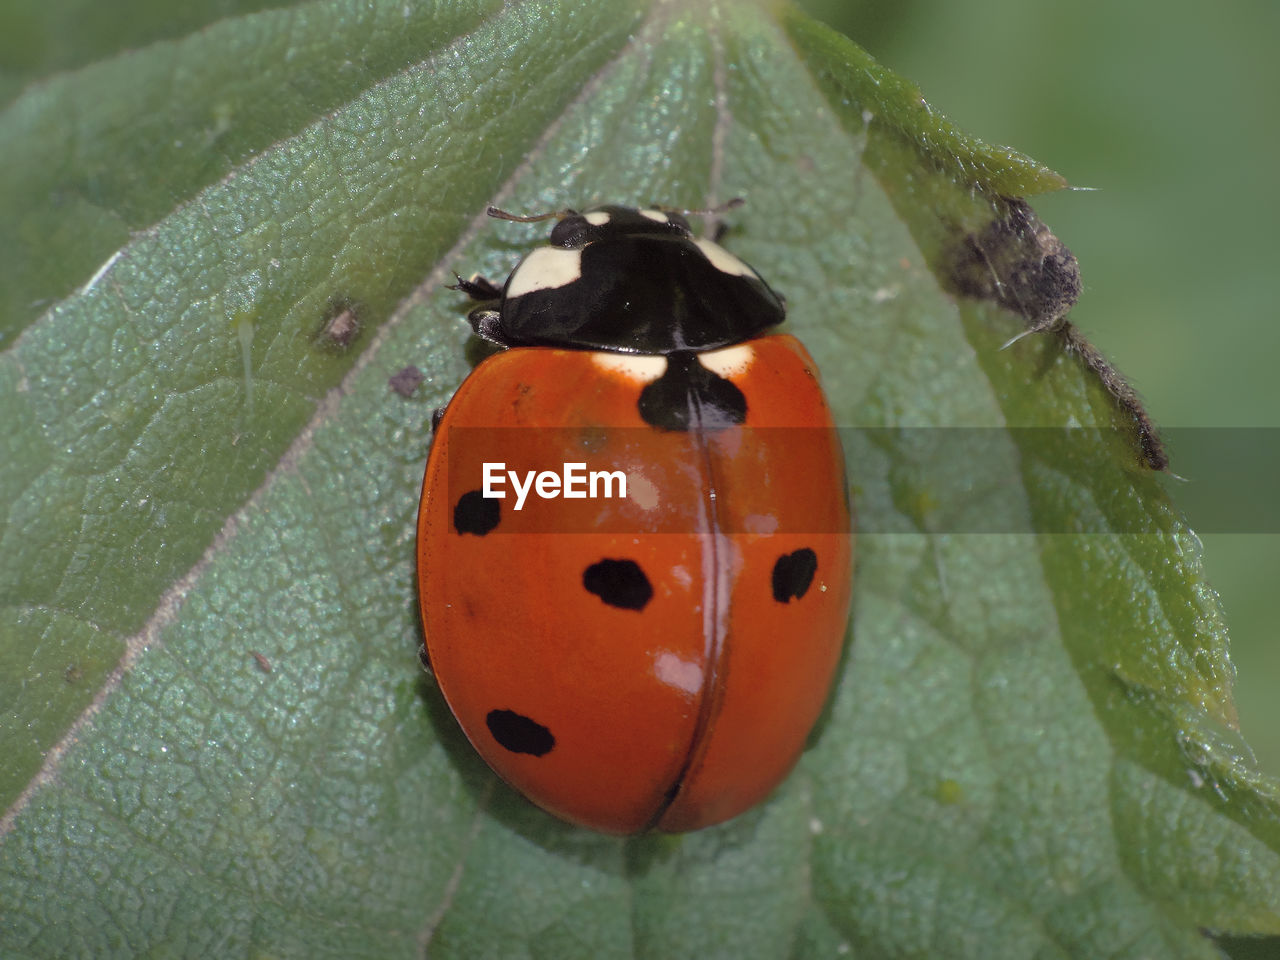 leaf, plant part, invertebrate, insect, beetle, close-up, ladybug, plant, animal themes, animal, animal wildlife, animals in the wild, one animal, nature, no people, green color, focus on foreground, orange color, day, growth, outdoors